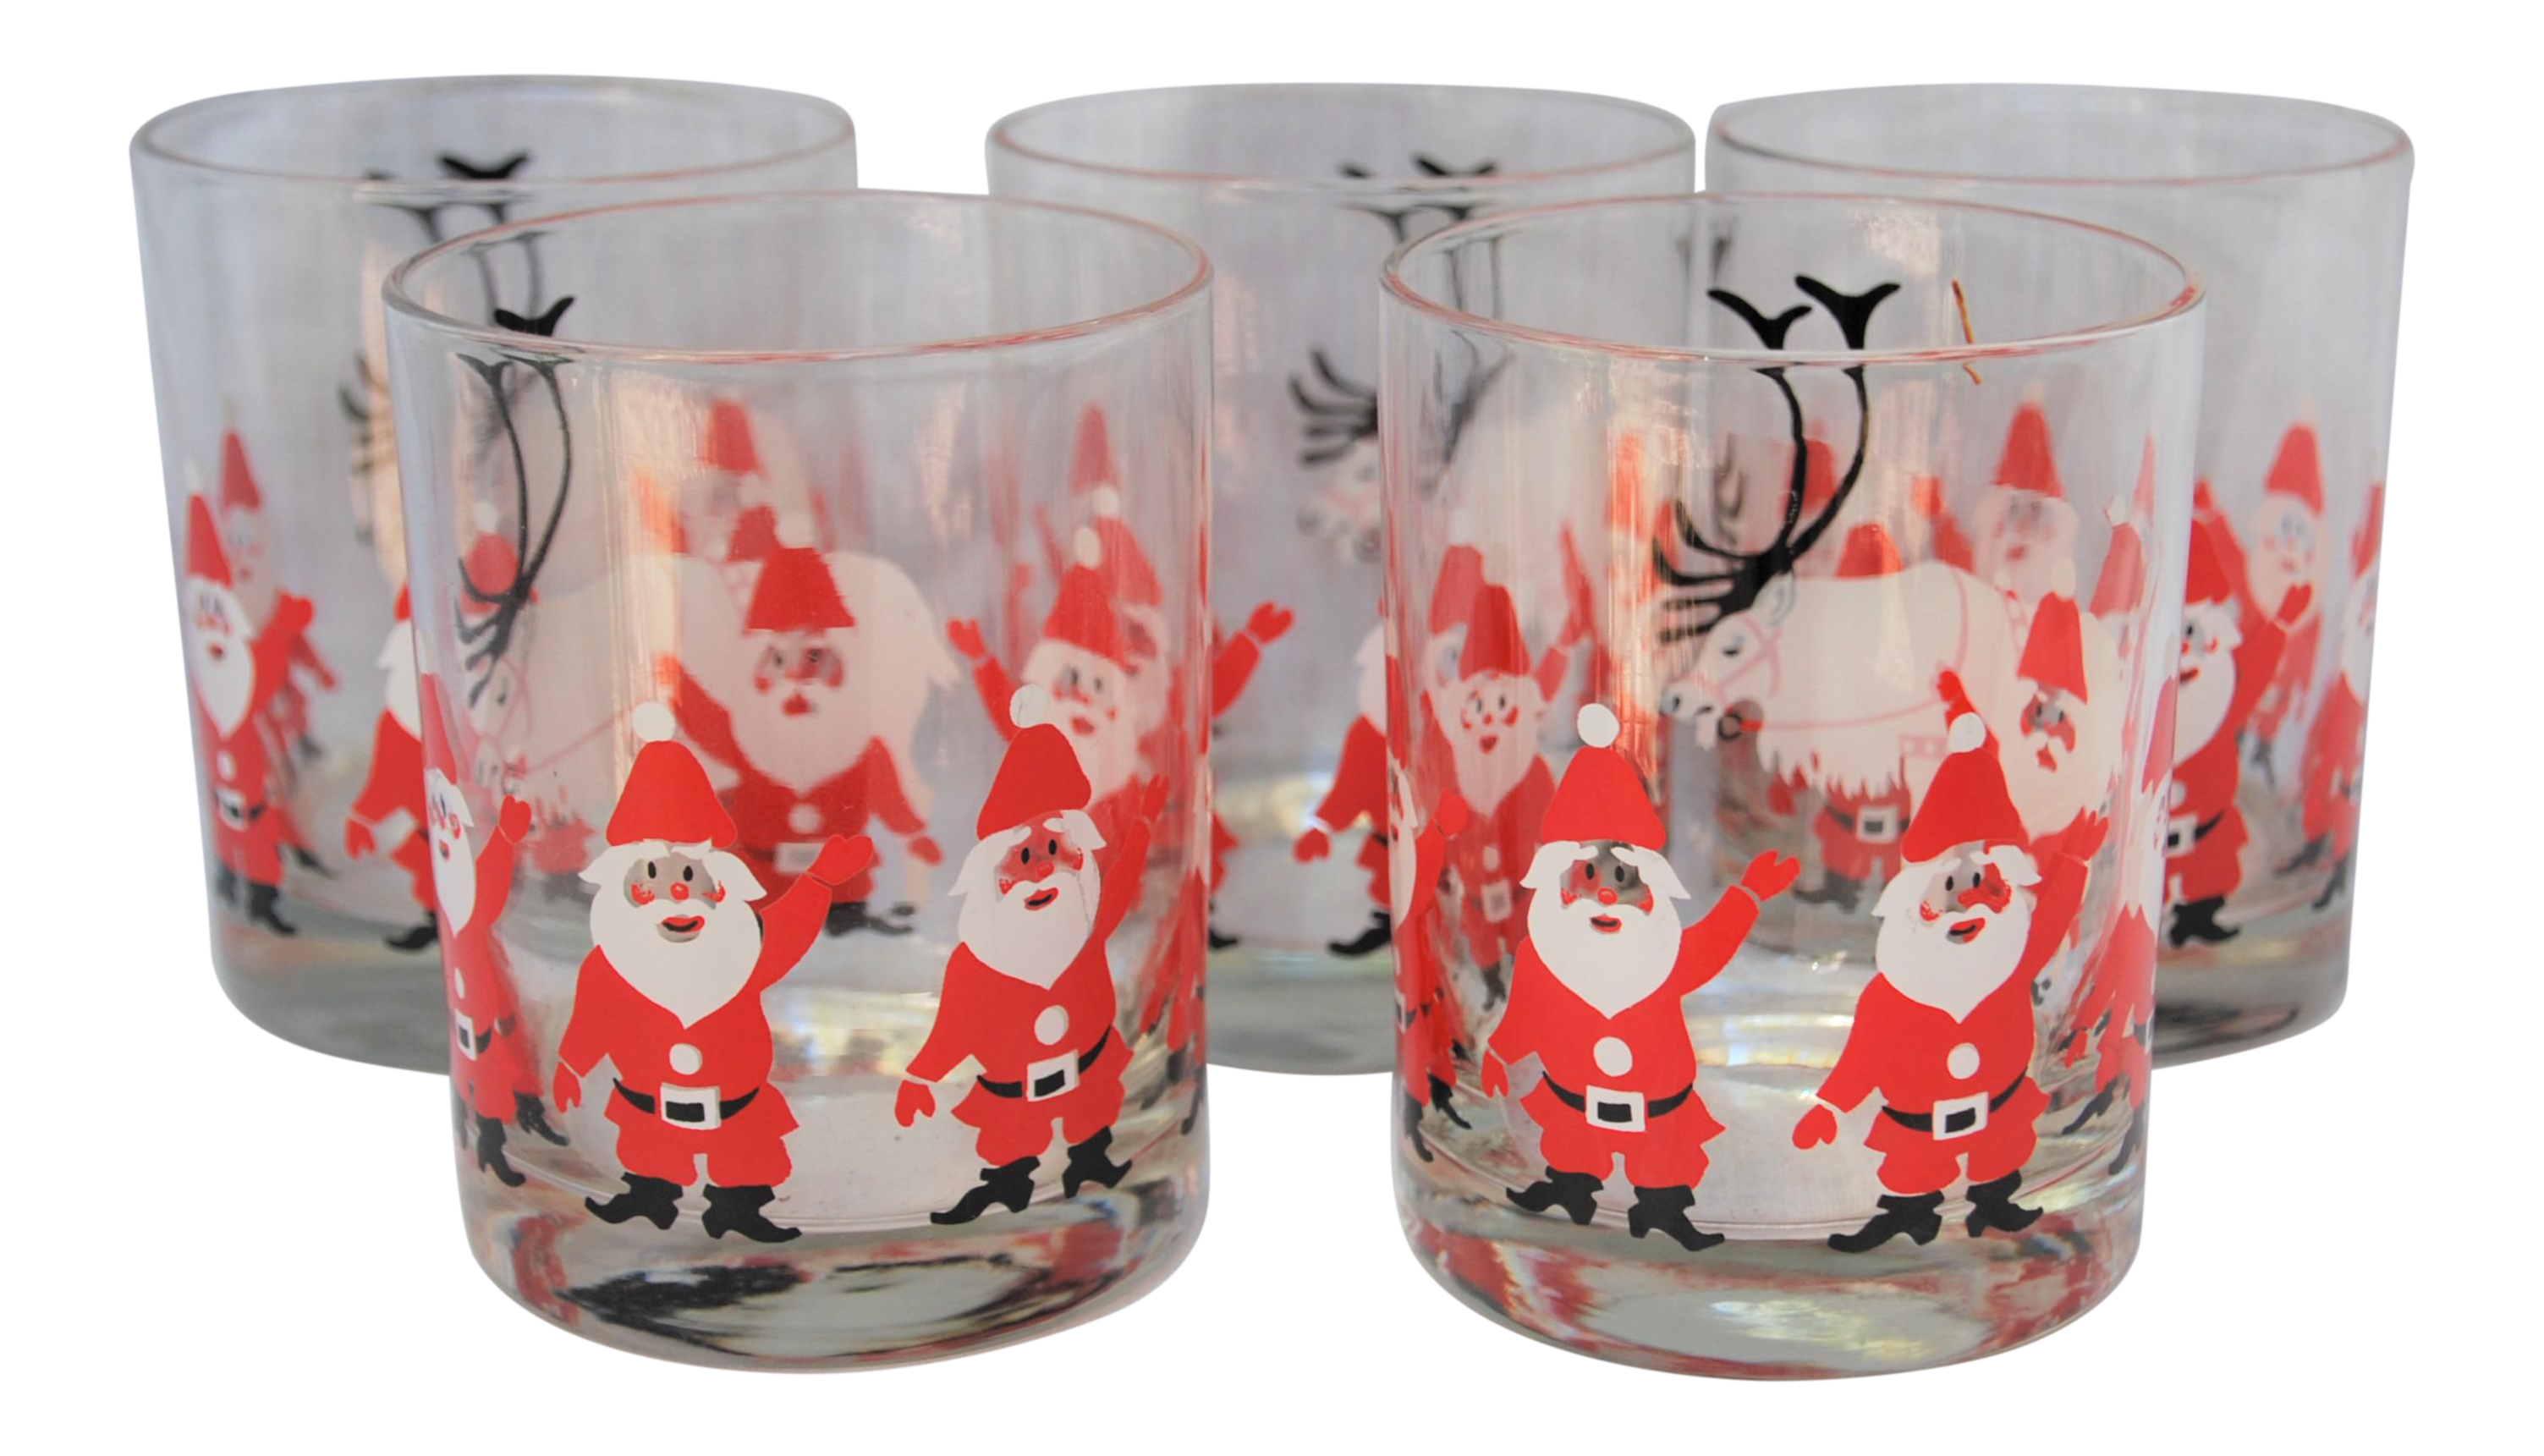 24af283df762 SOLD!!! Vintage George Briard Santa Glasses - Set of 5 on Chairish ...